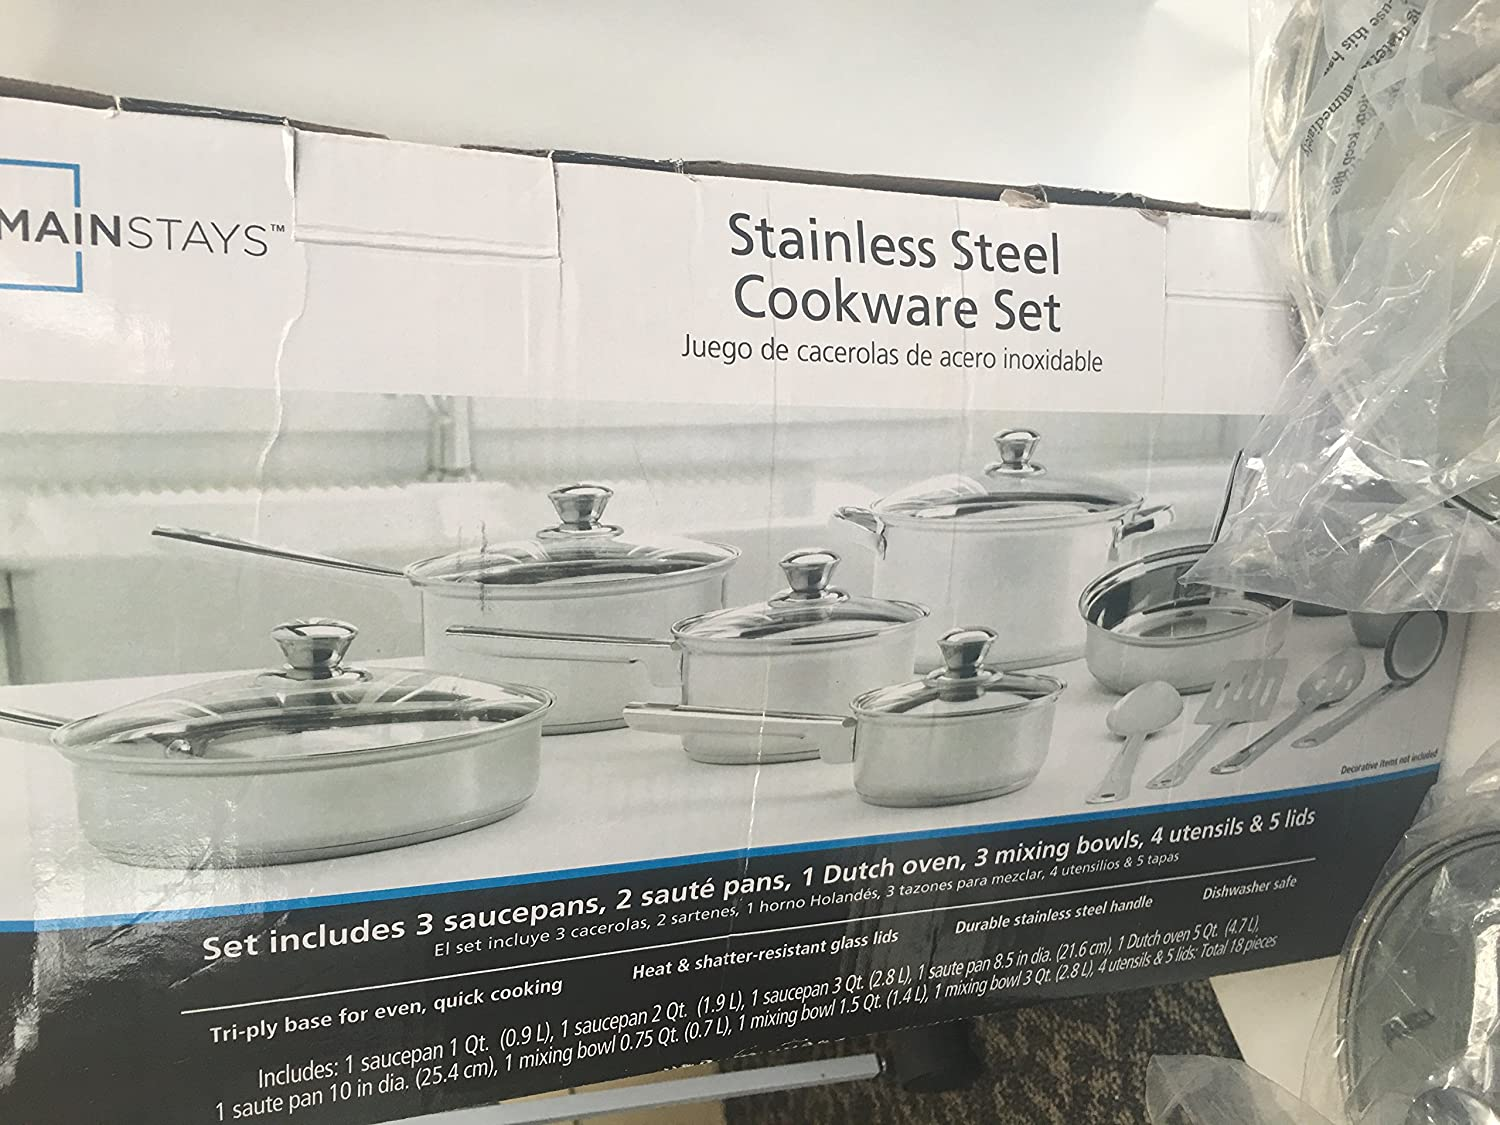 Amazon.com: Mainstays Stainless Steel Cookware Set 18 pc ...